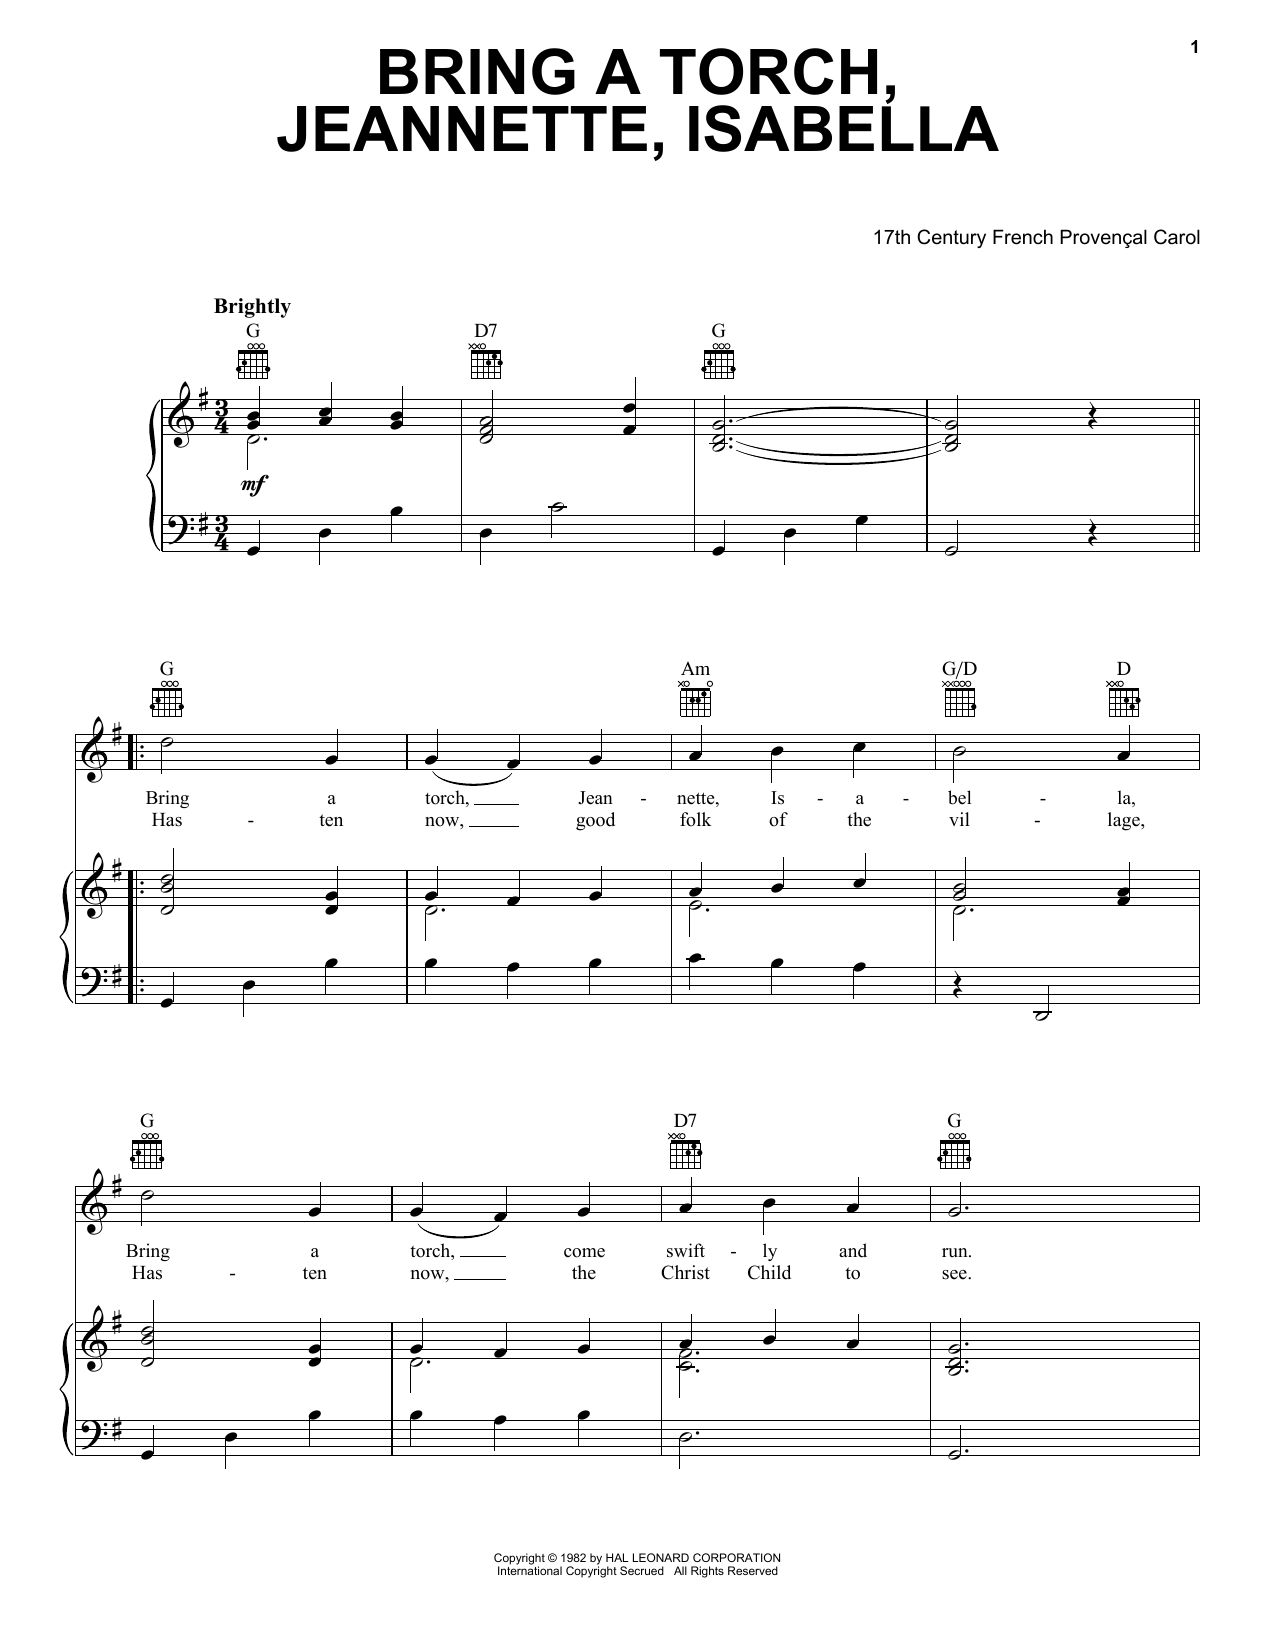 Bring A Torch, Jeannette Isabella (Piano, Vocal & Guitar (Right-Hand Melody))